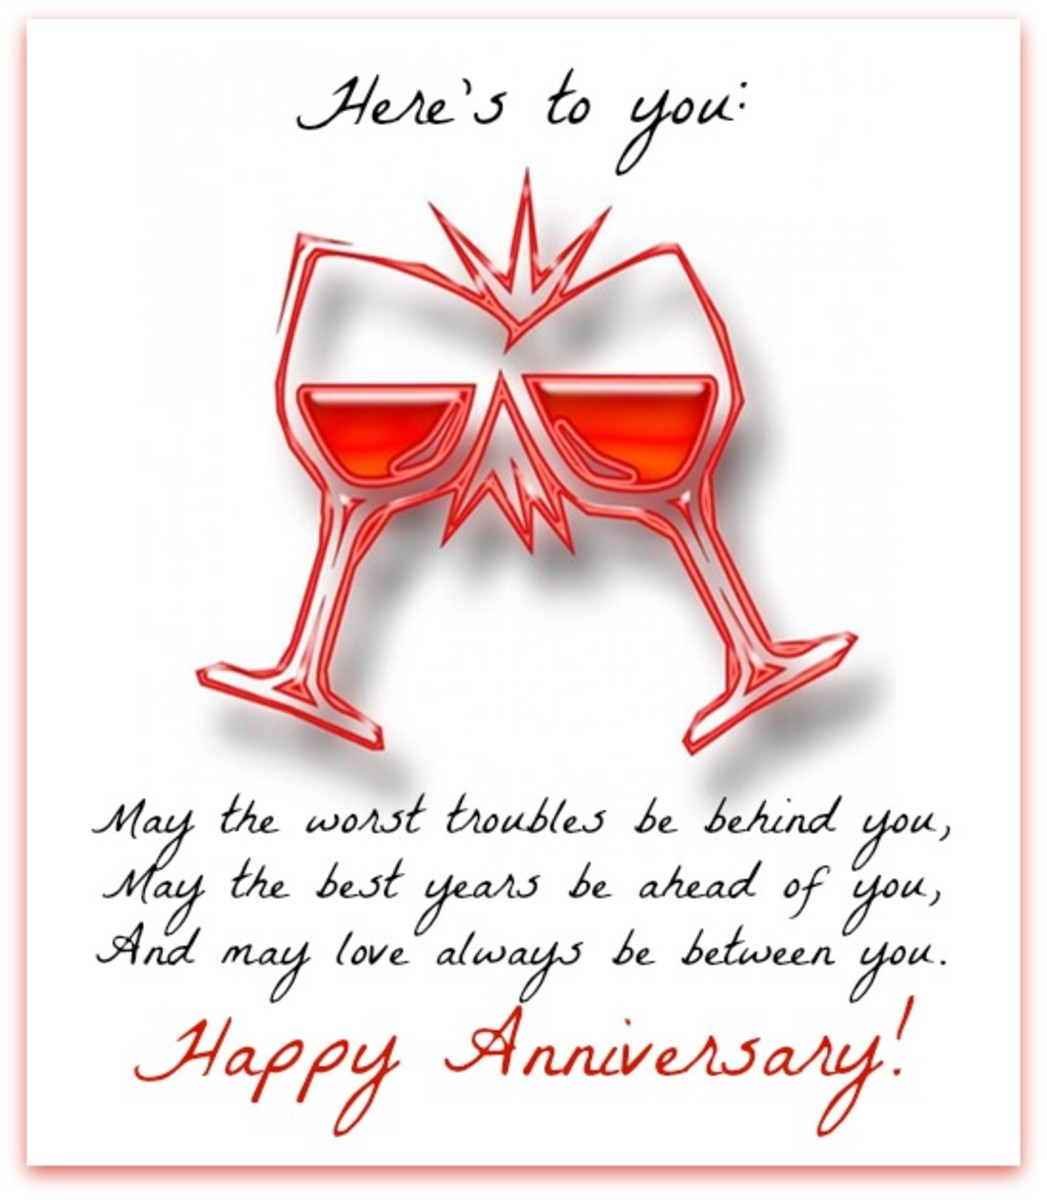 Anniversary Messages in Champagne Toast